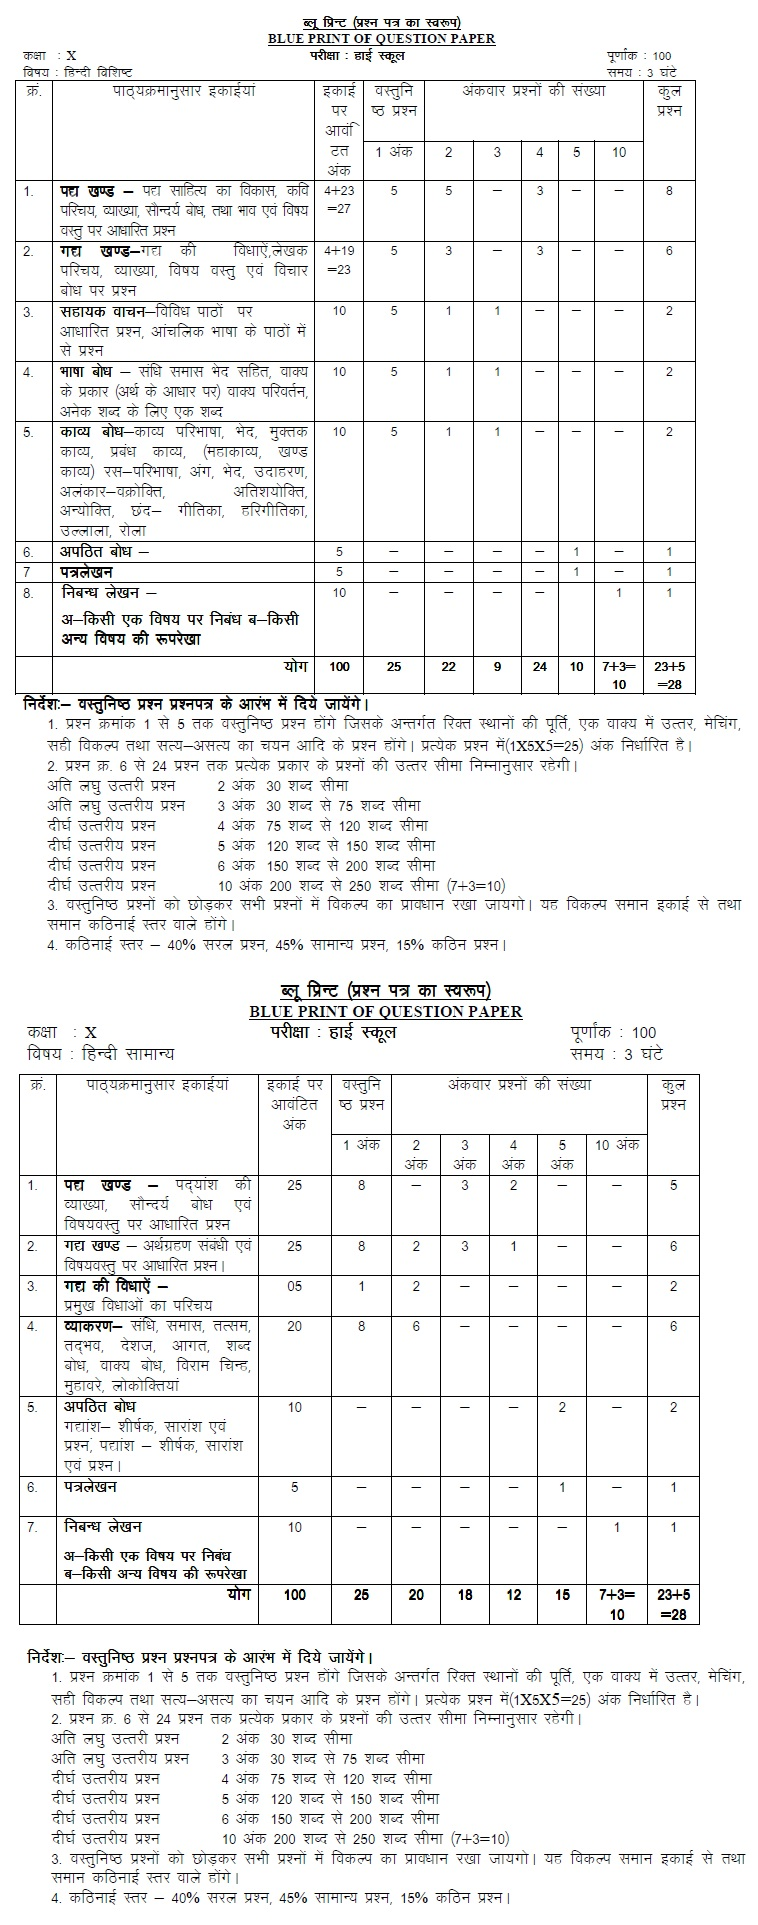 MP Board Blue Print of Class X Hindi Question Paper 2014